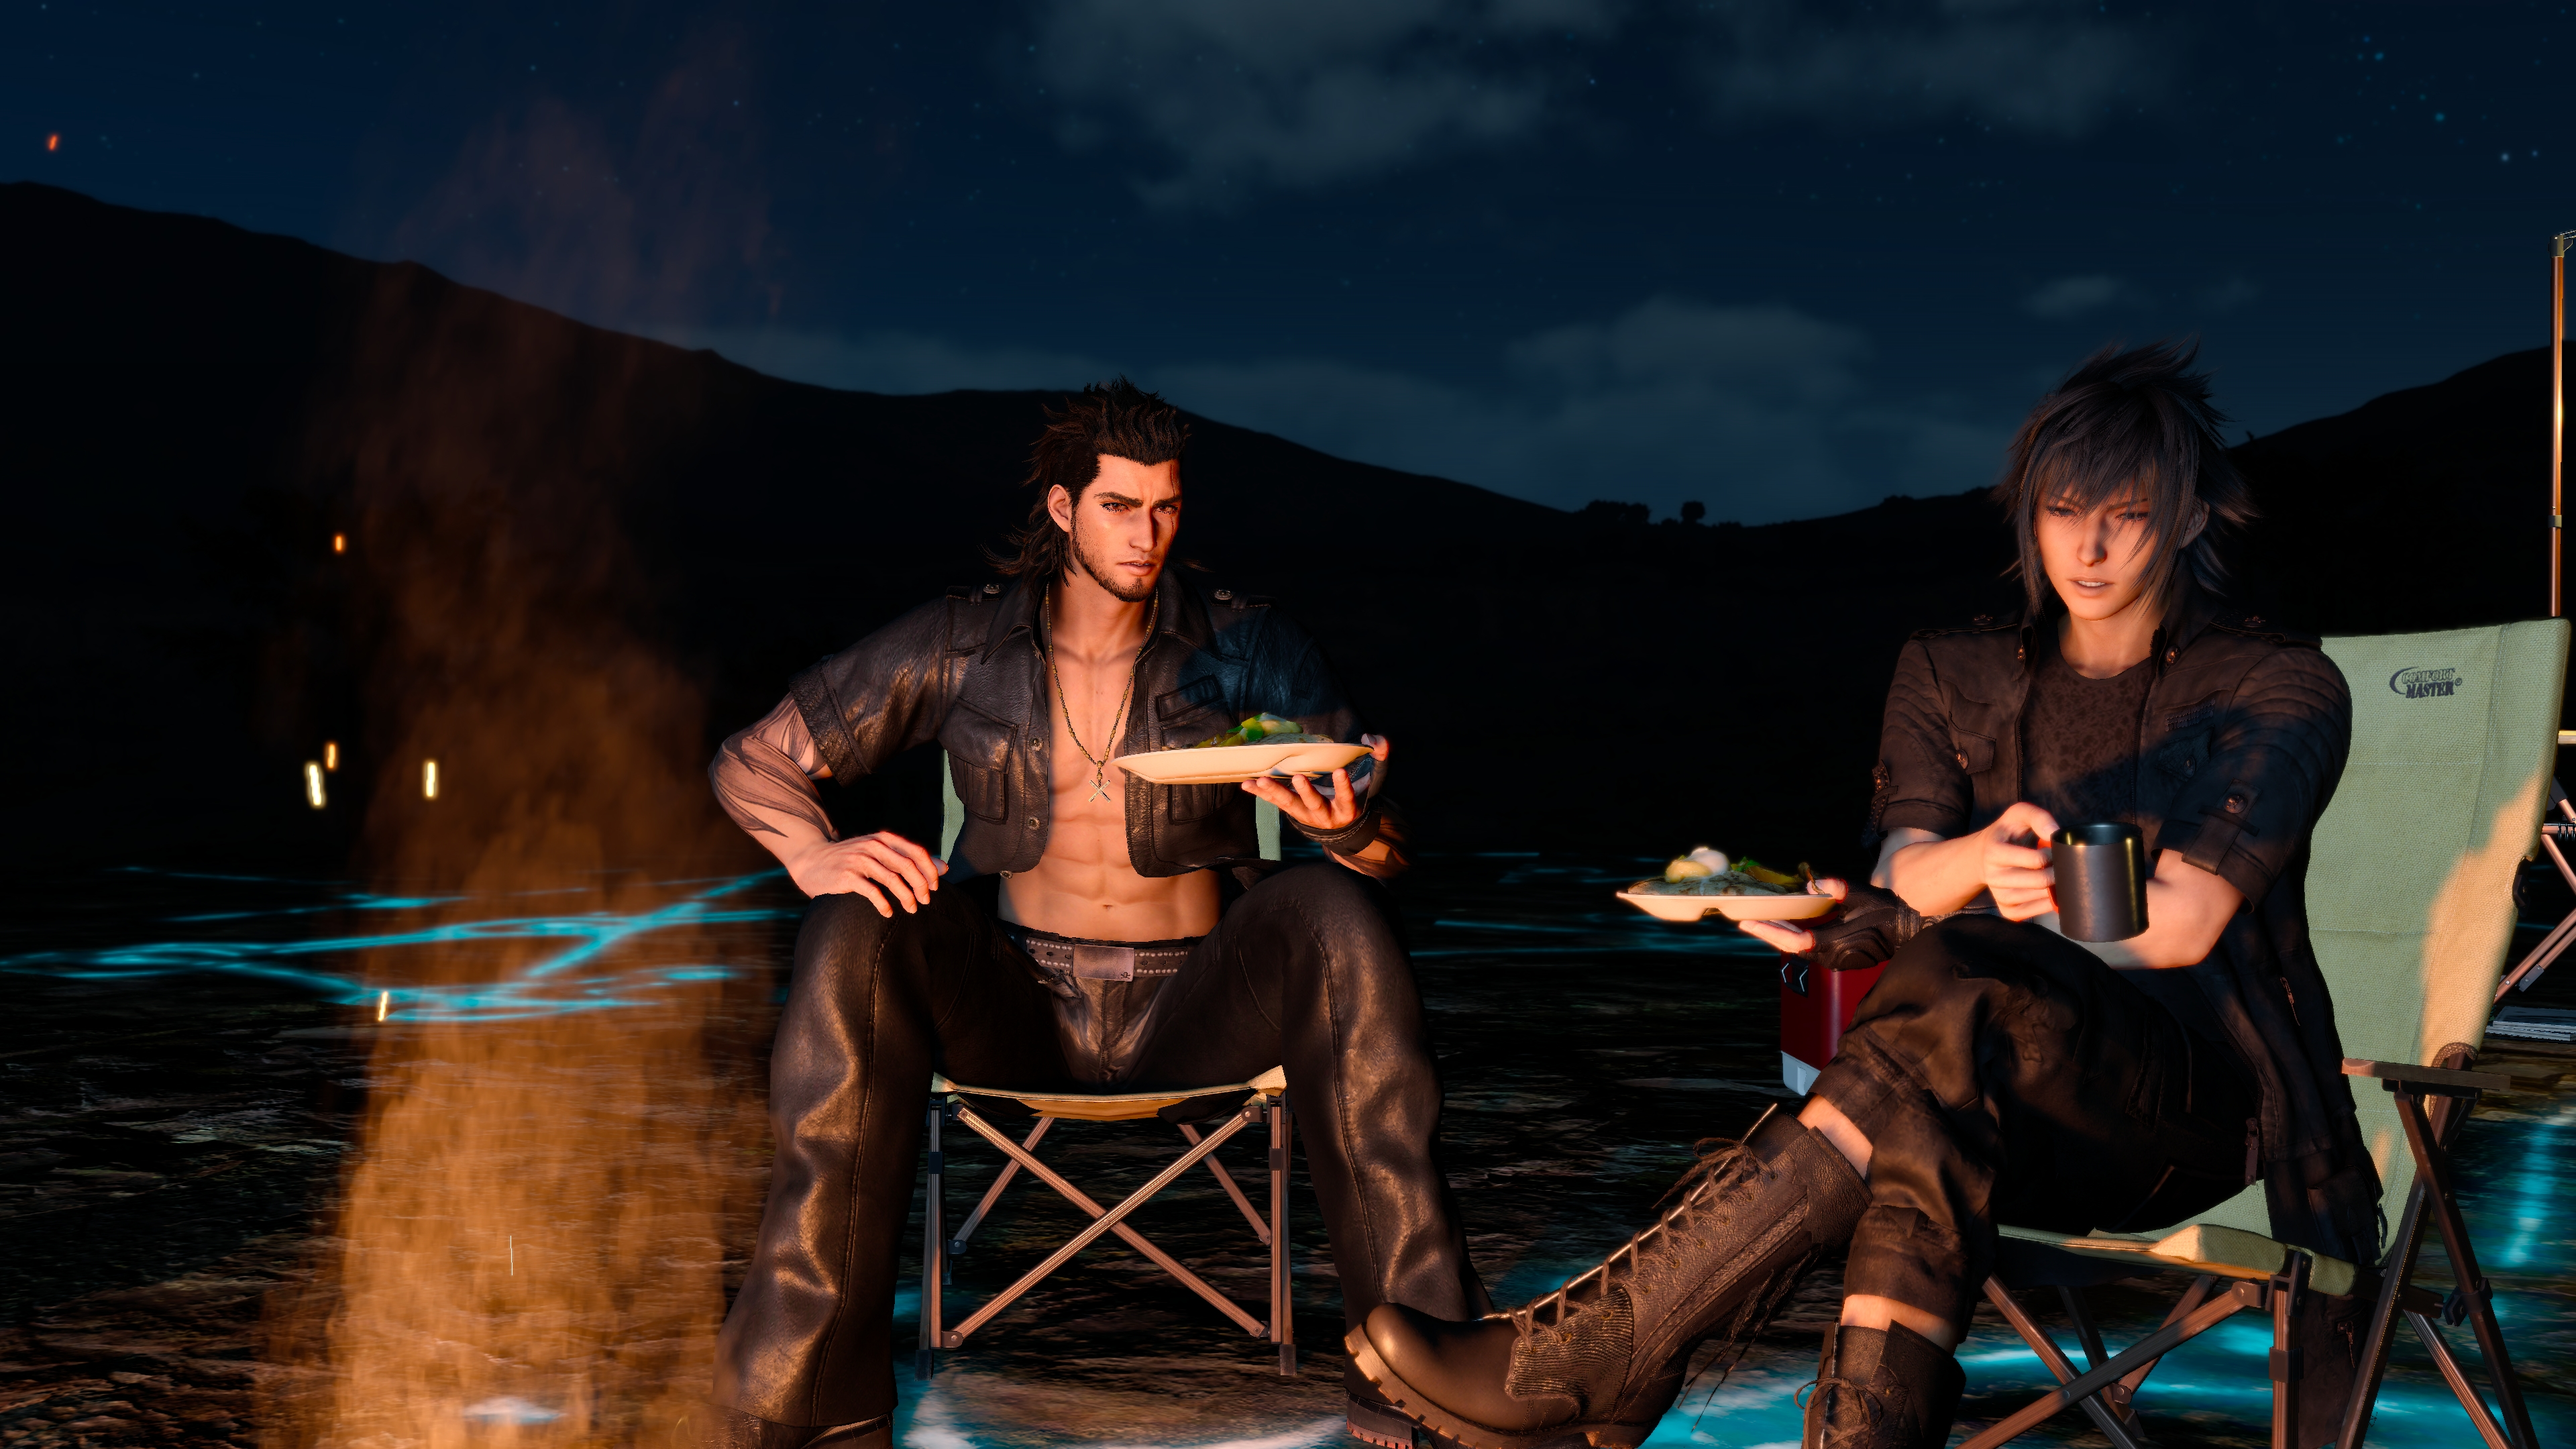 Final Fantasy XV - Noctis and Gladiolus by SNColors